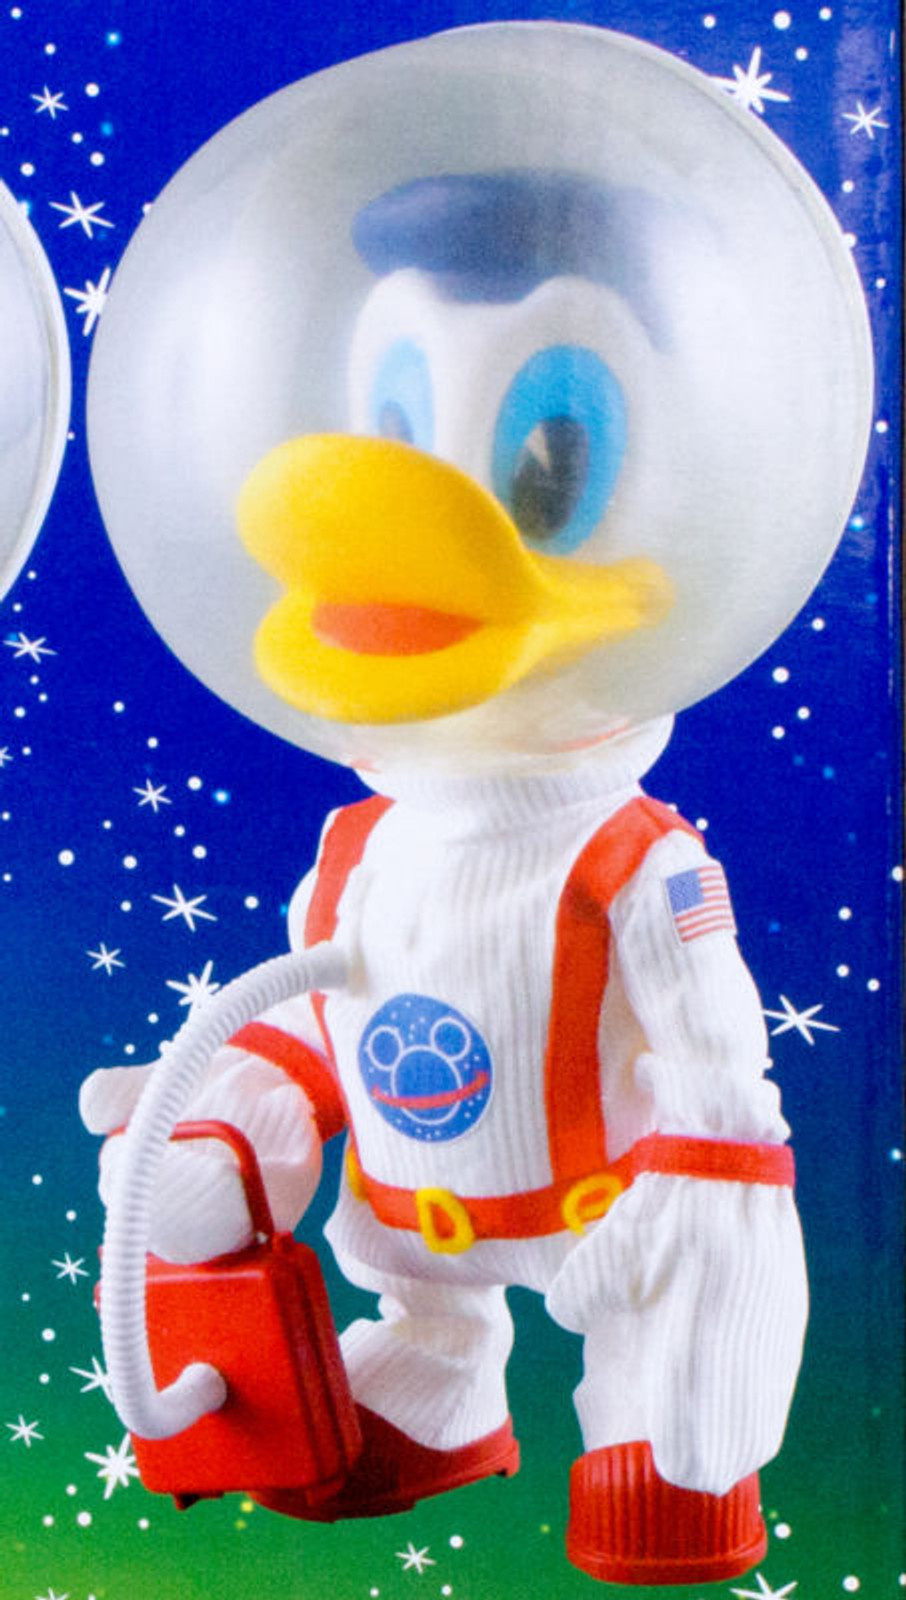 Disney Donald Duck Astronauts VCD Vinyl Collectible Dolls Figure Medicom JAPAN